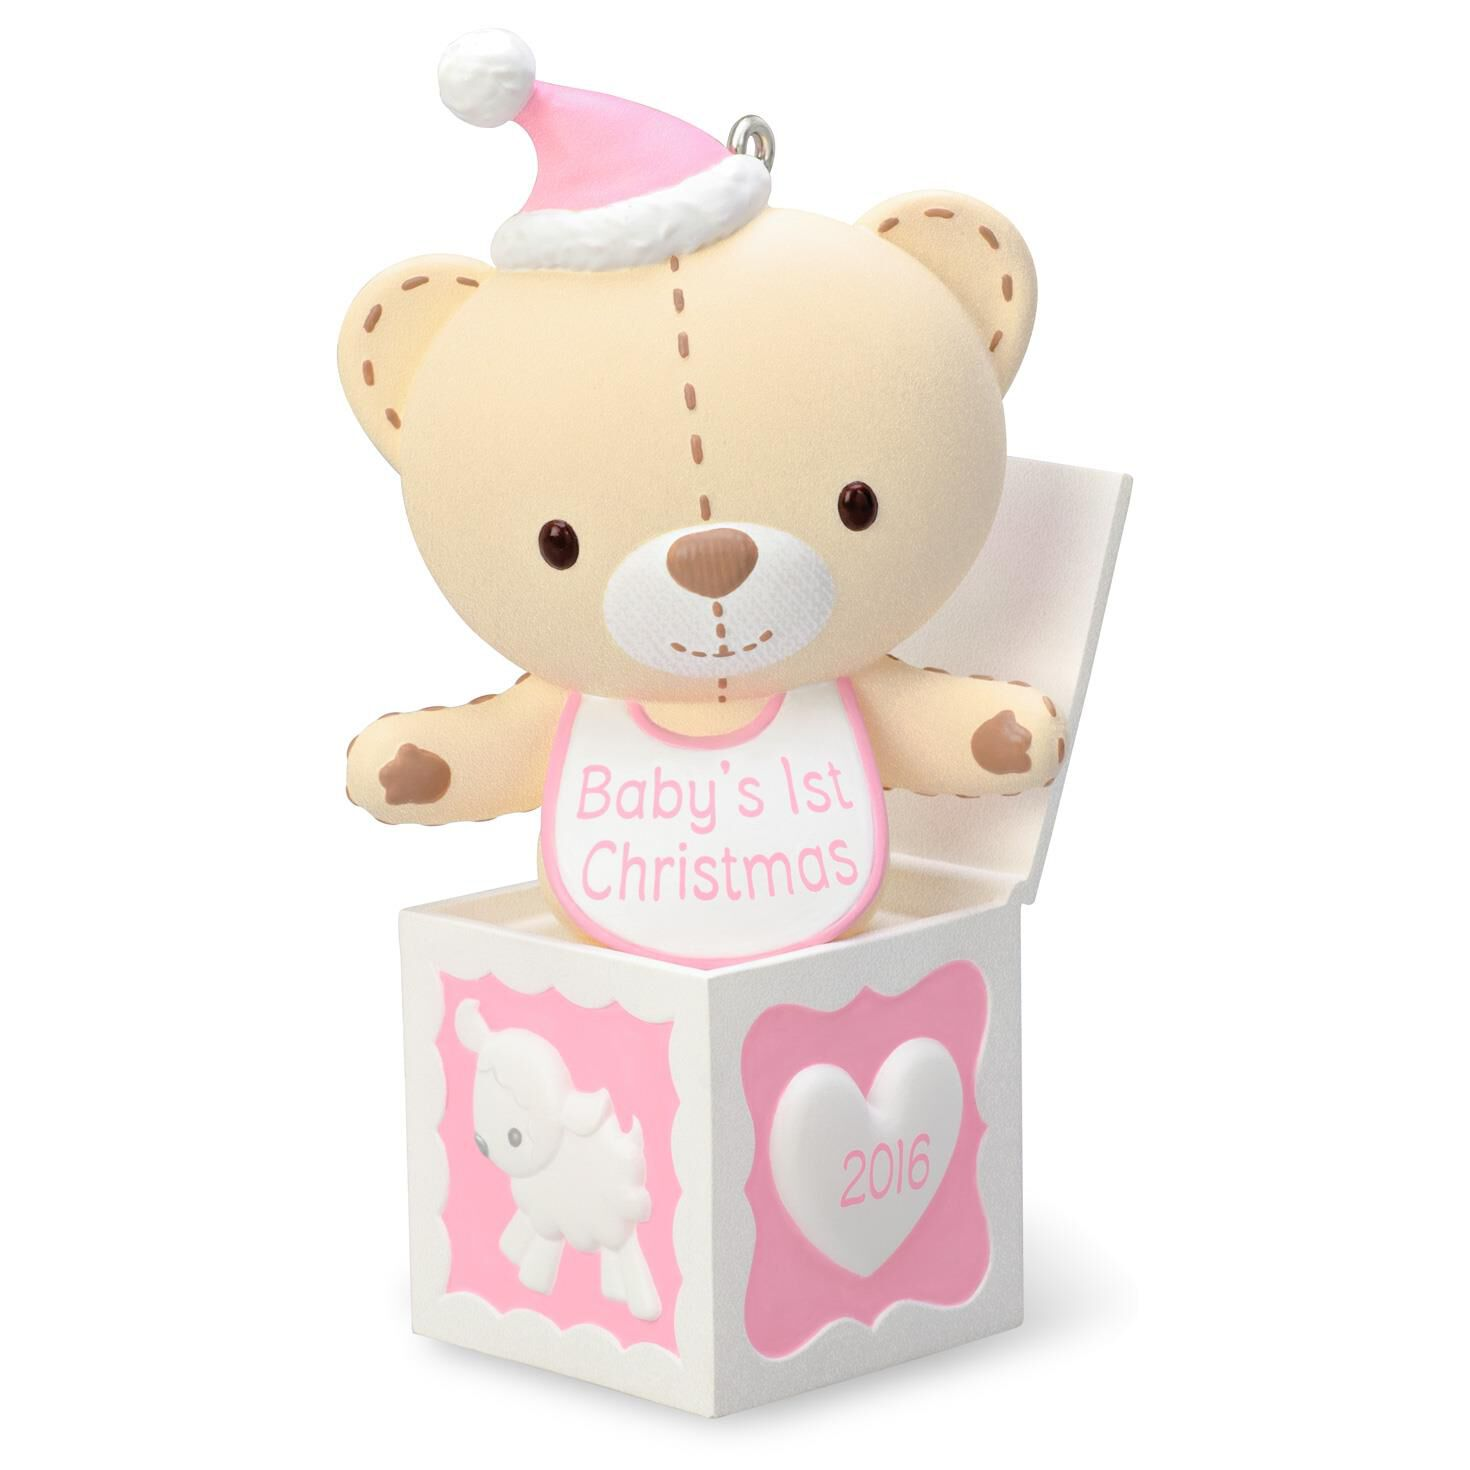 Baby ornament - Baby Girl S First Christmas Pink Teddy Bear In The Box Ornament 2016 Edition Sale Hallmark